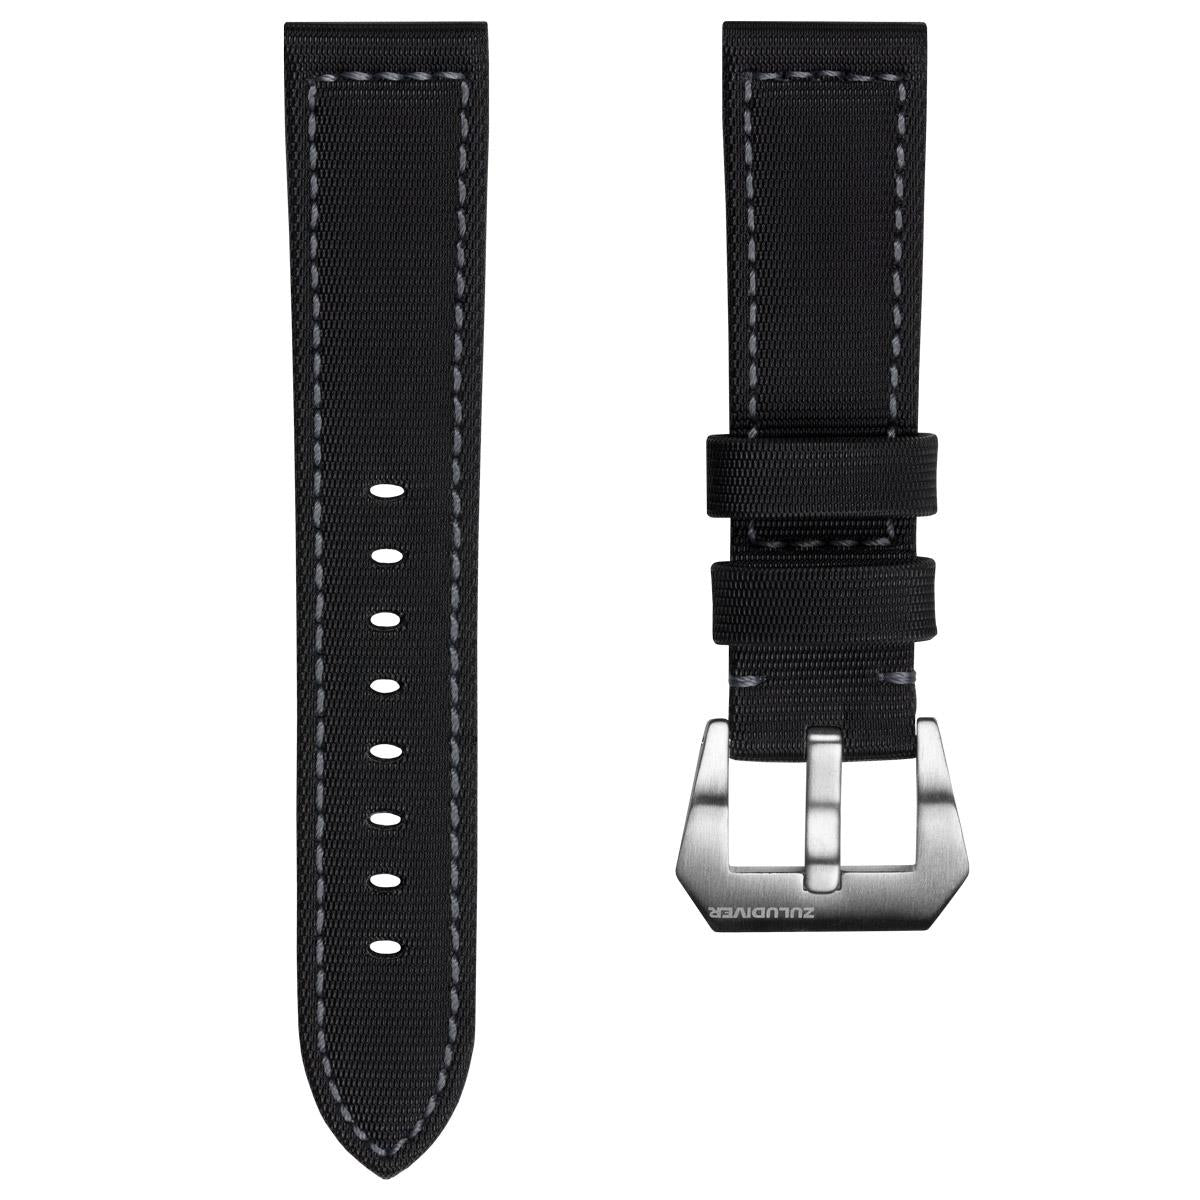 The Helford By Zuludiver, Sailcloth Waterproof Watch Strap